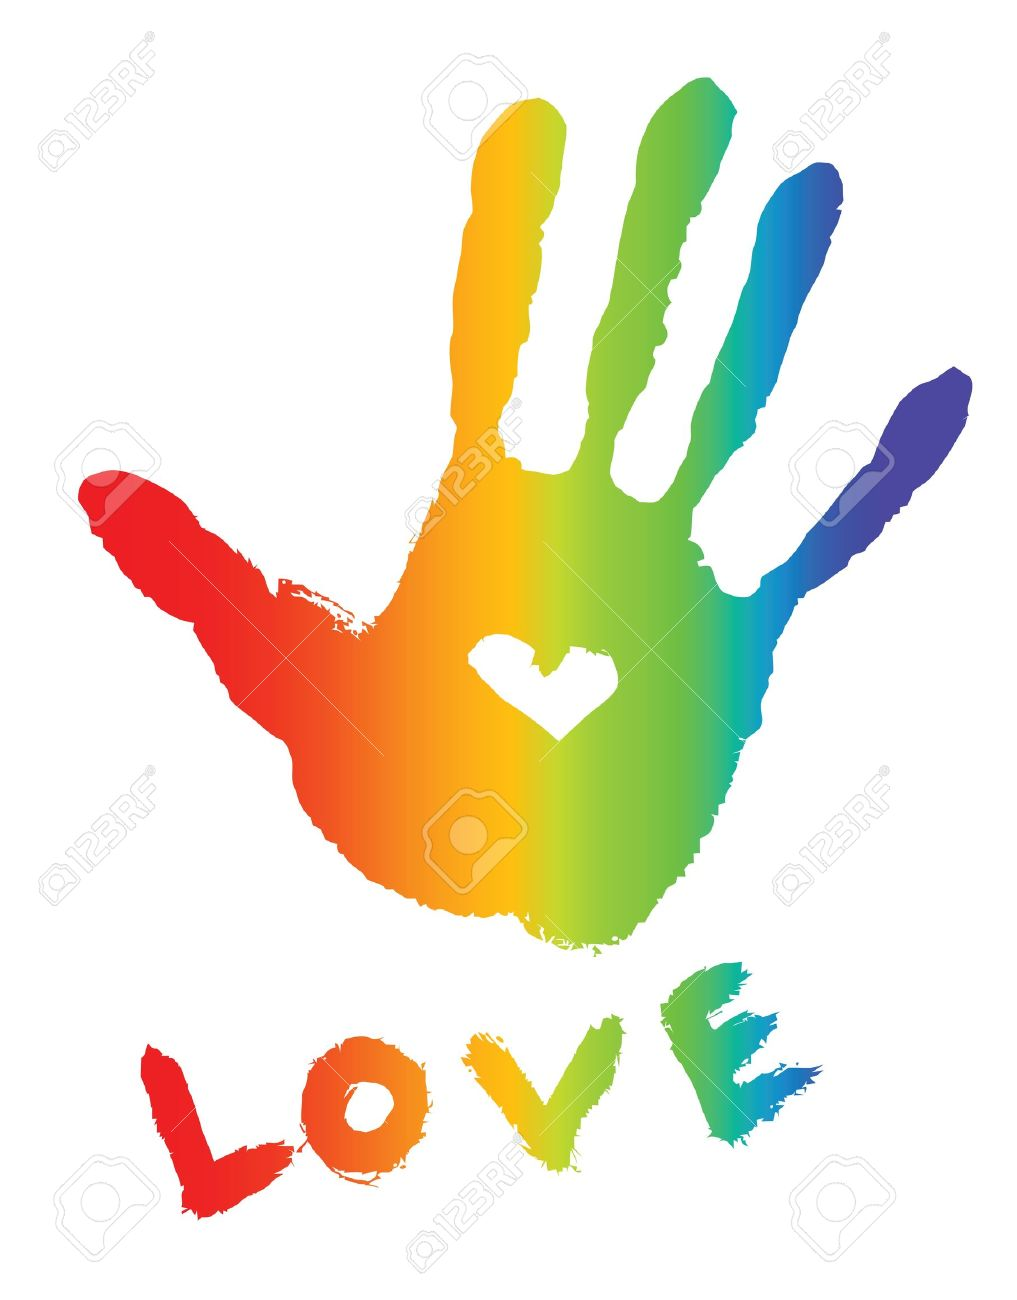 bright colorful handprint with love symbol and 'love' word - 11060252